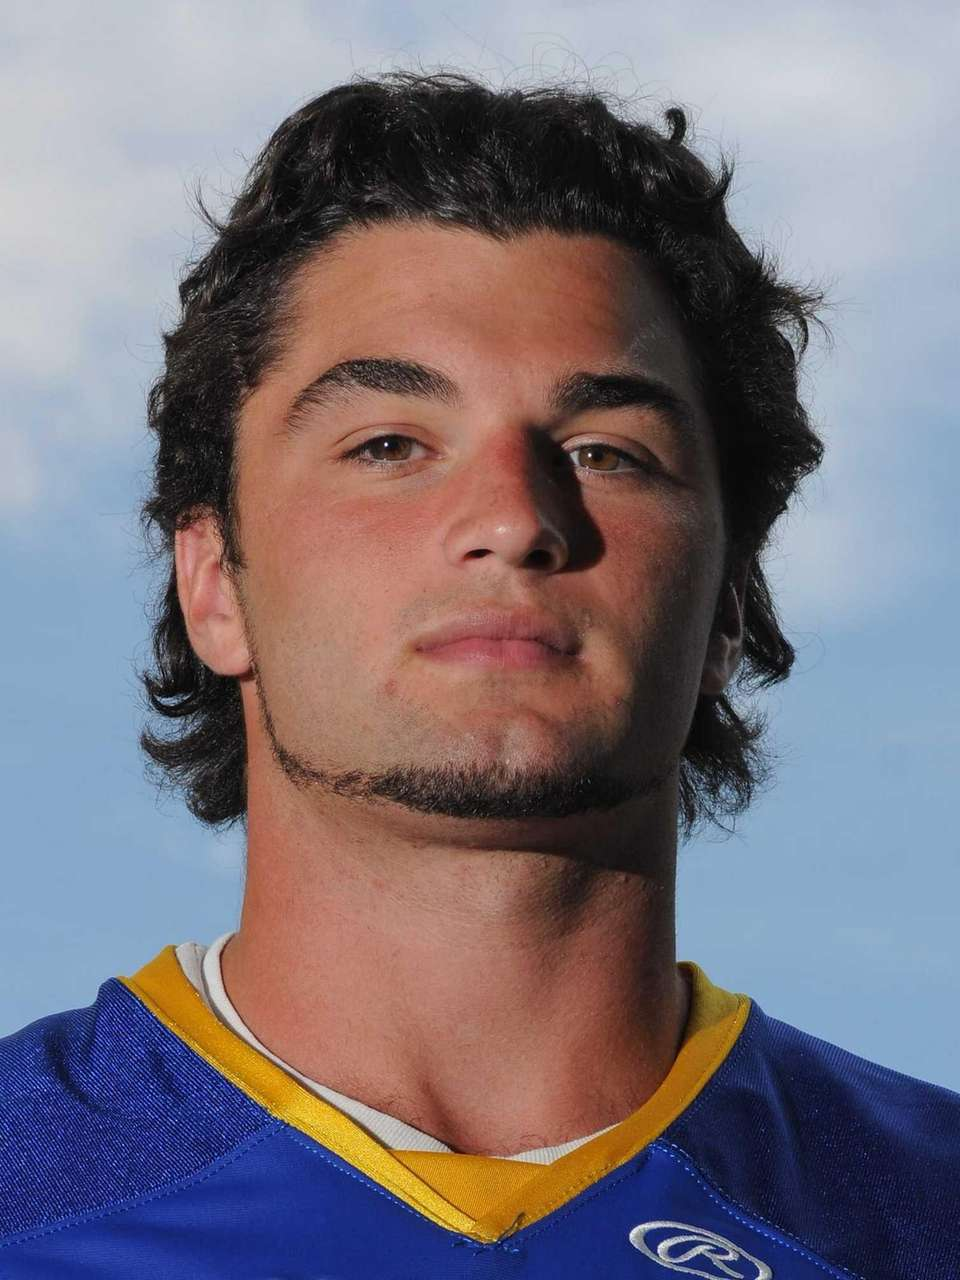 SAM ILARIO West Islip This 6-foot, 215-pound quarterback